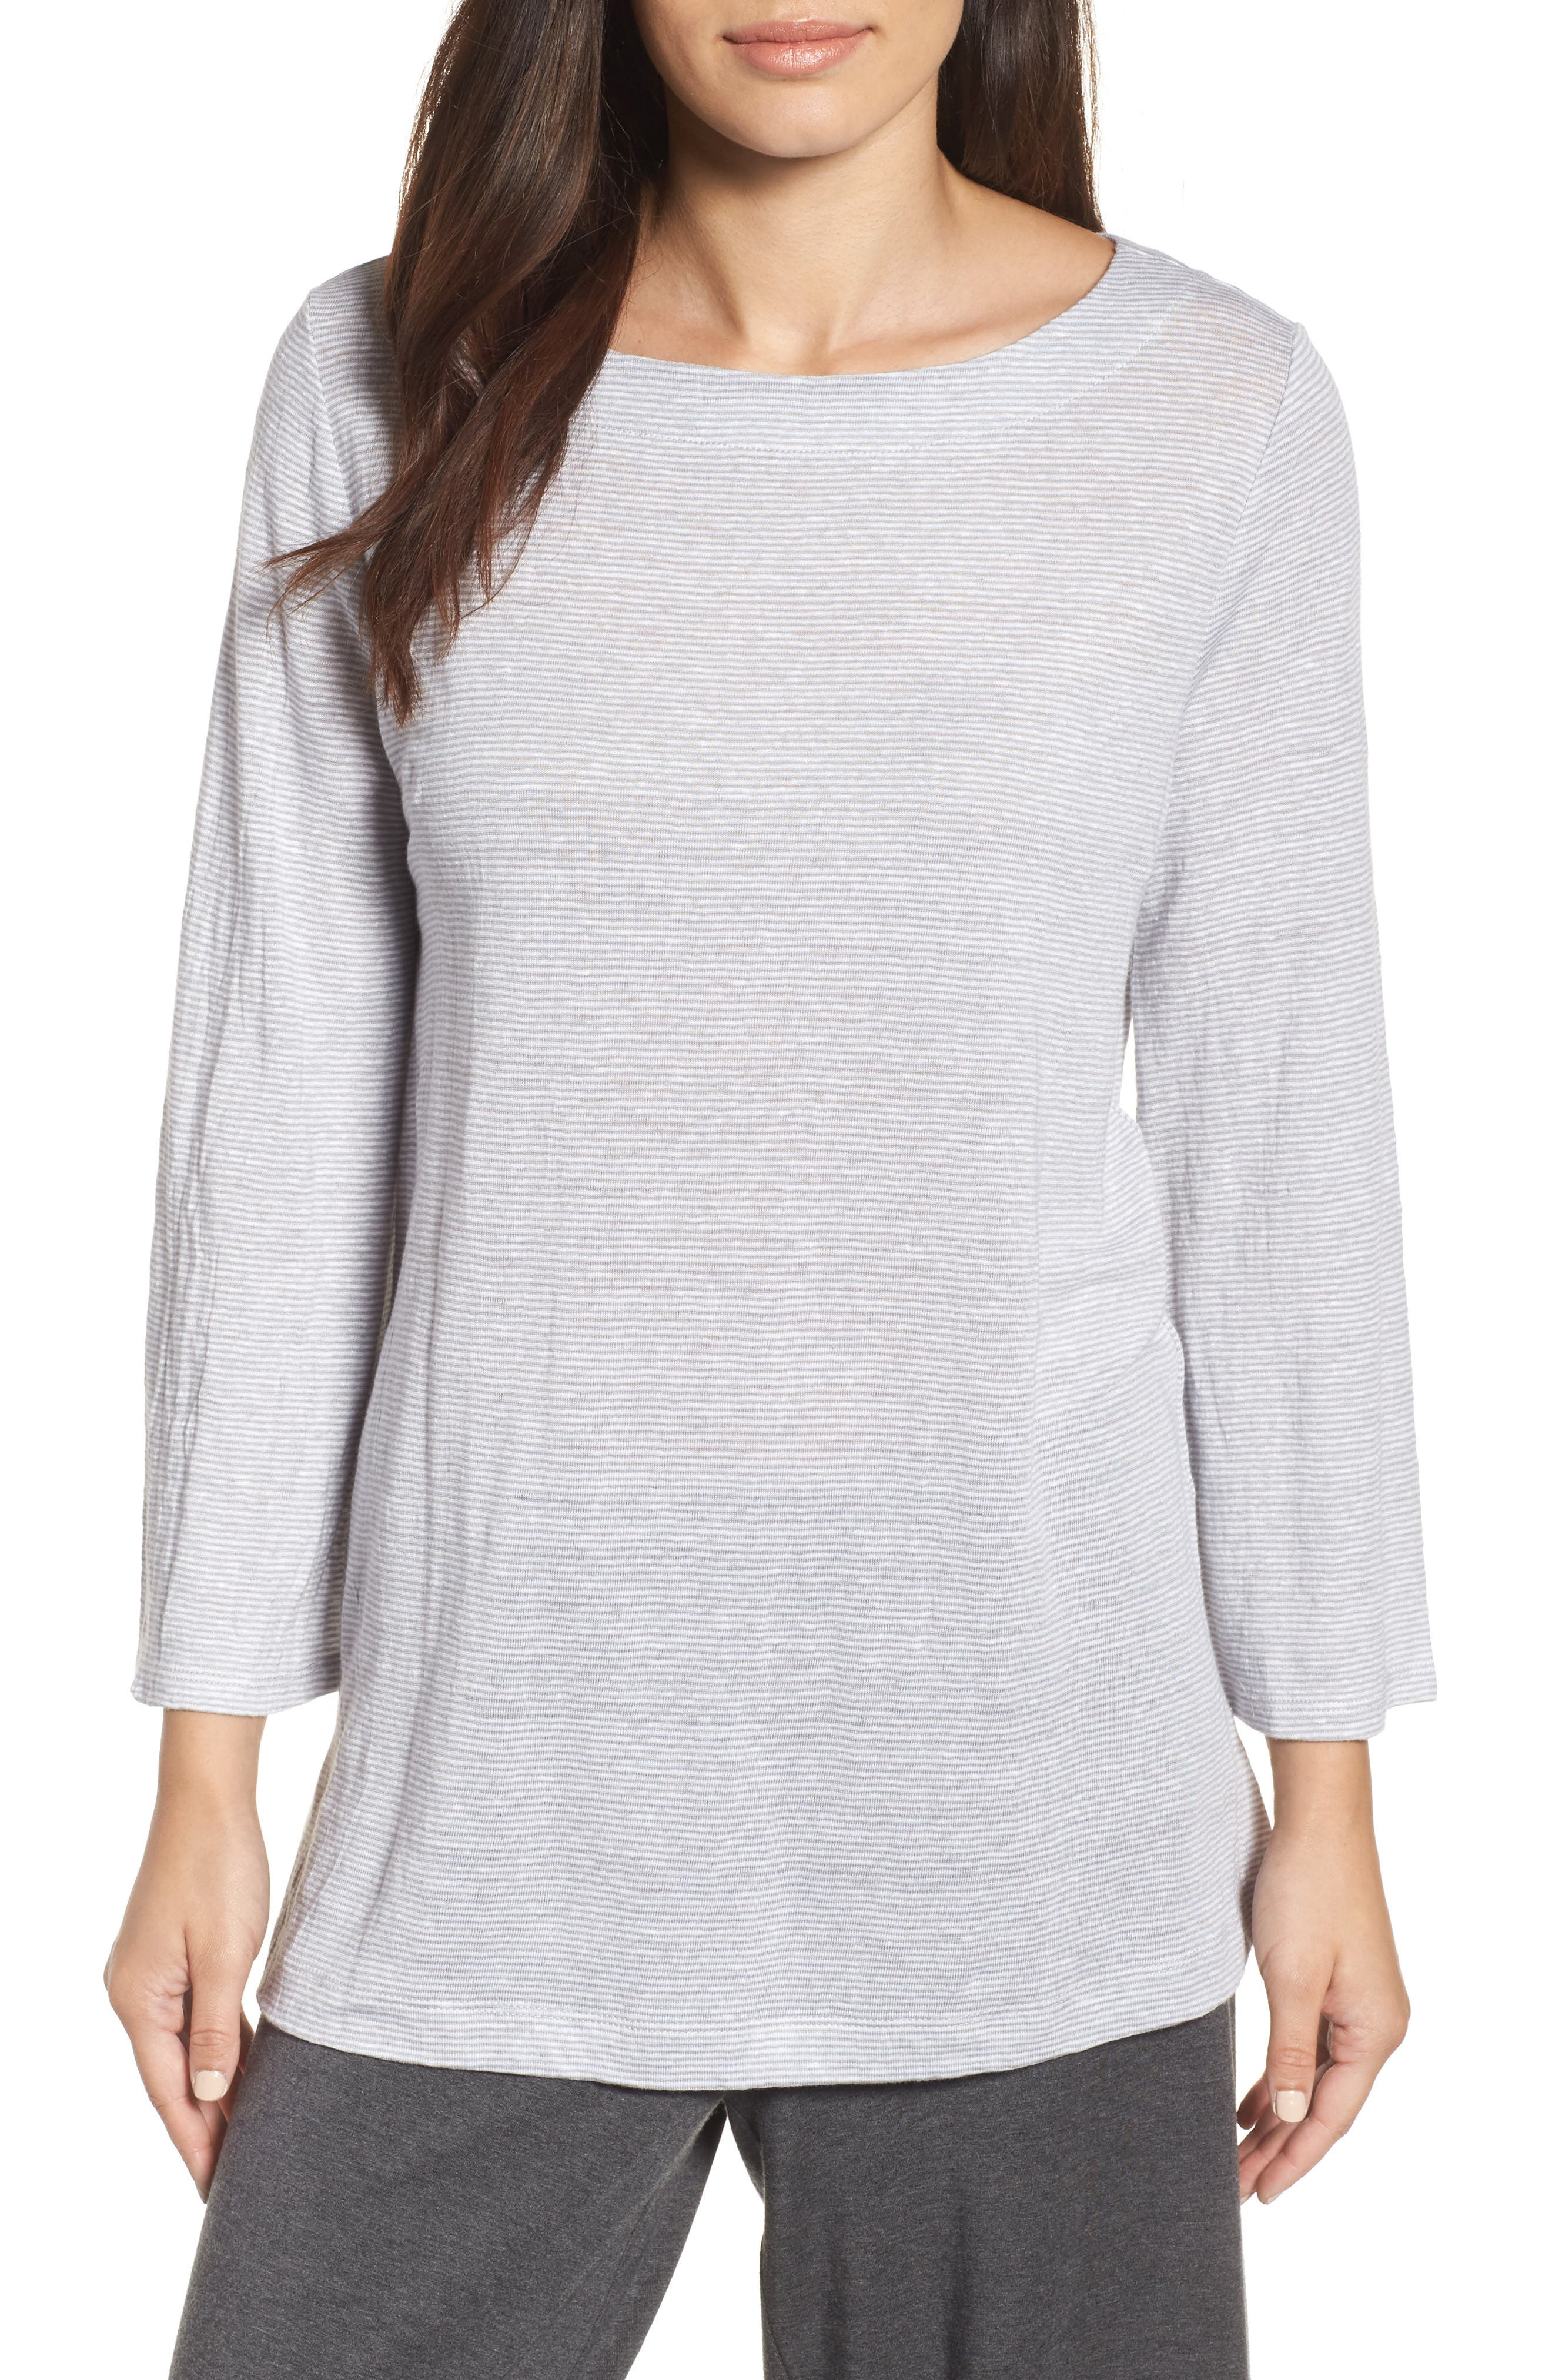 Eileen Fisher Organic Linen Bateau Neck Top (Regular & Petite)